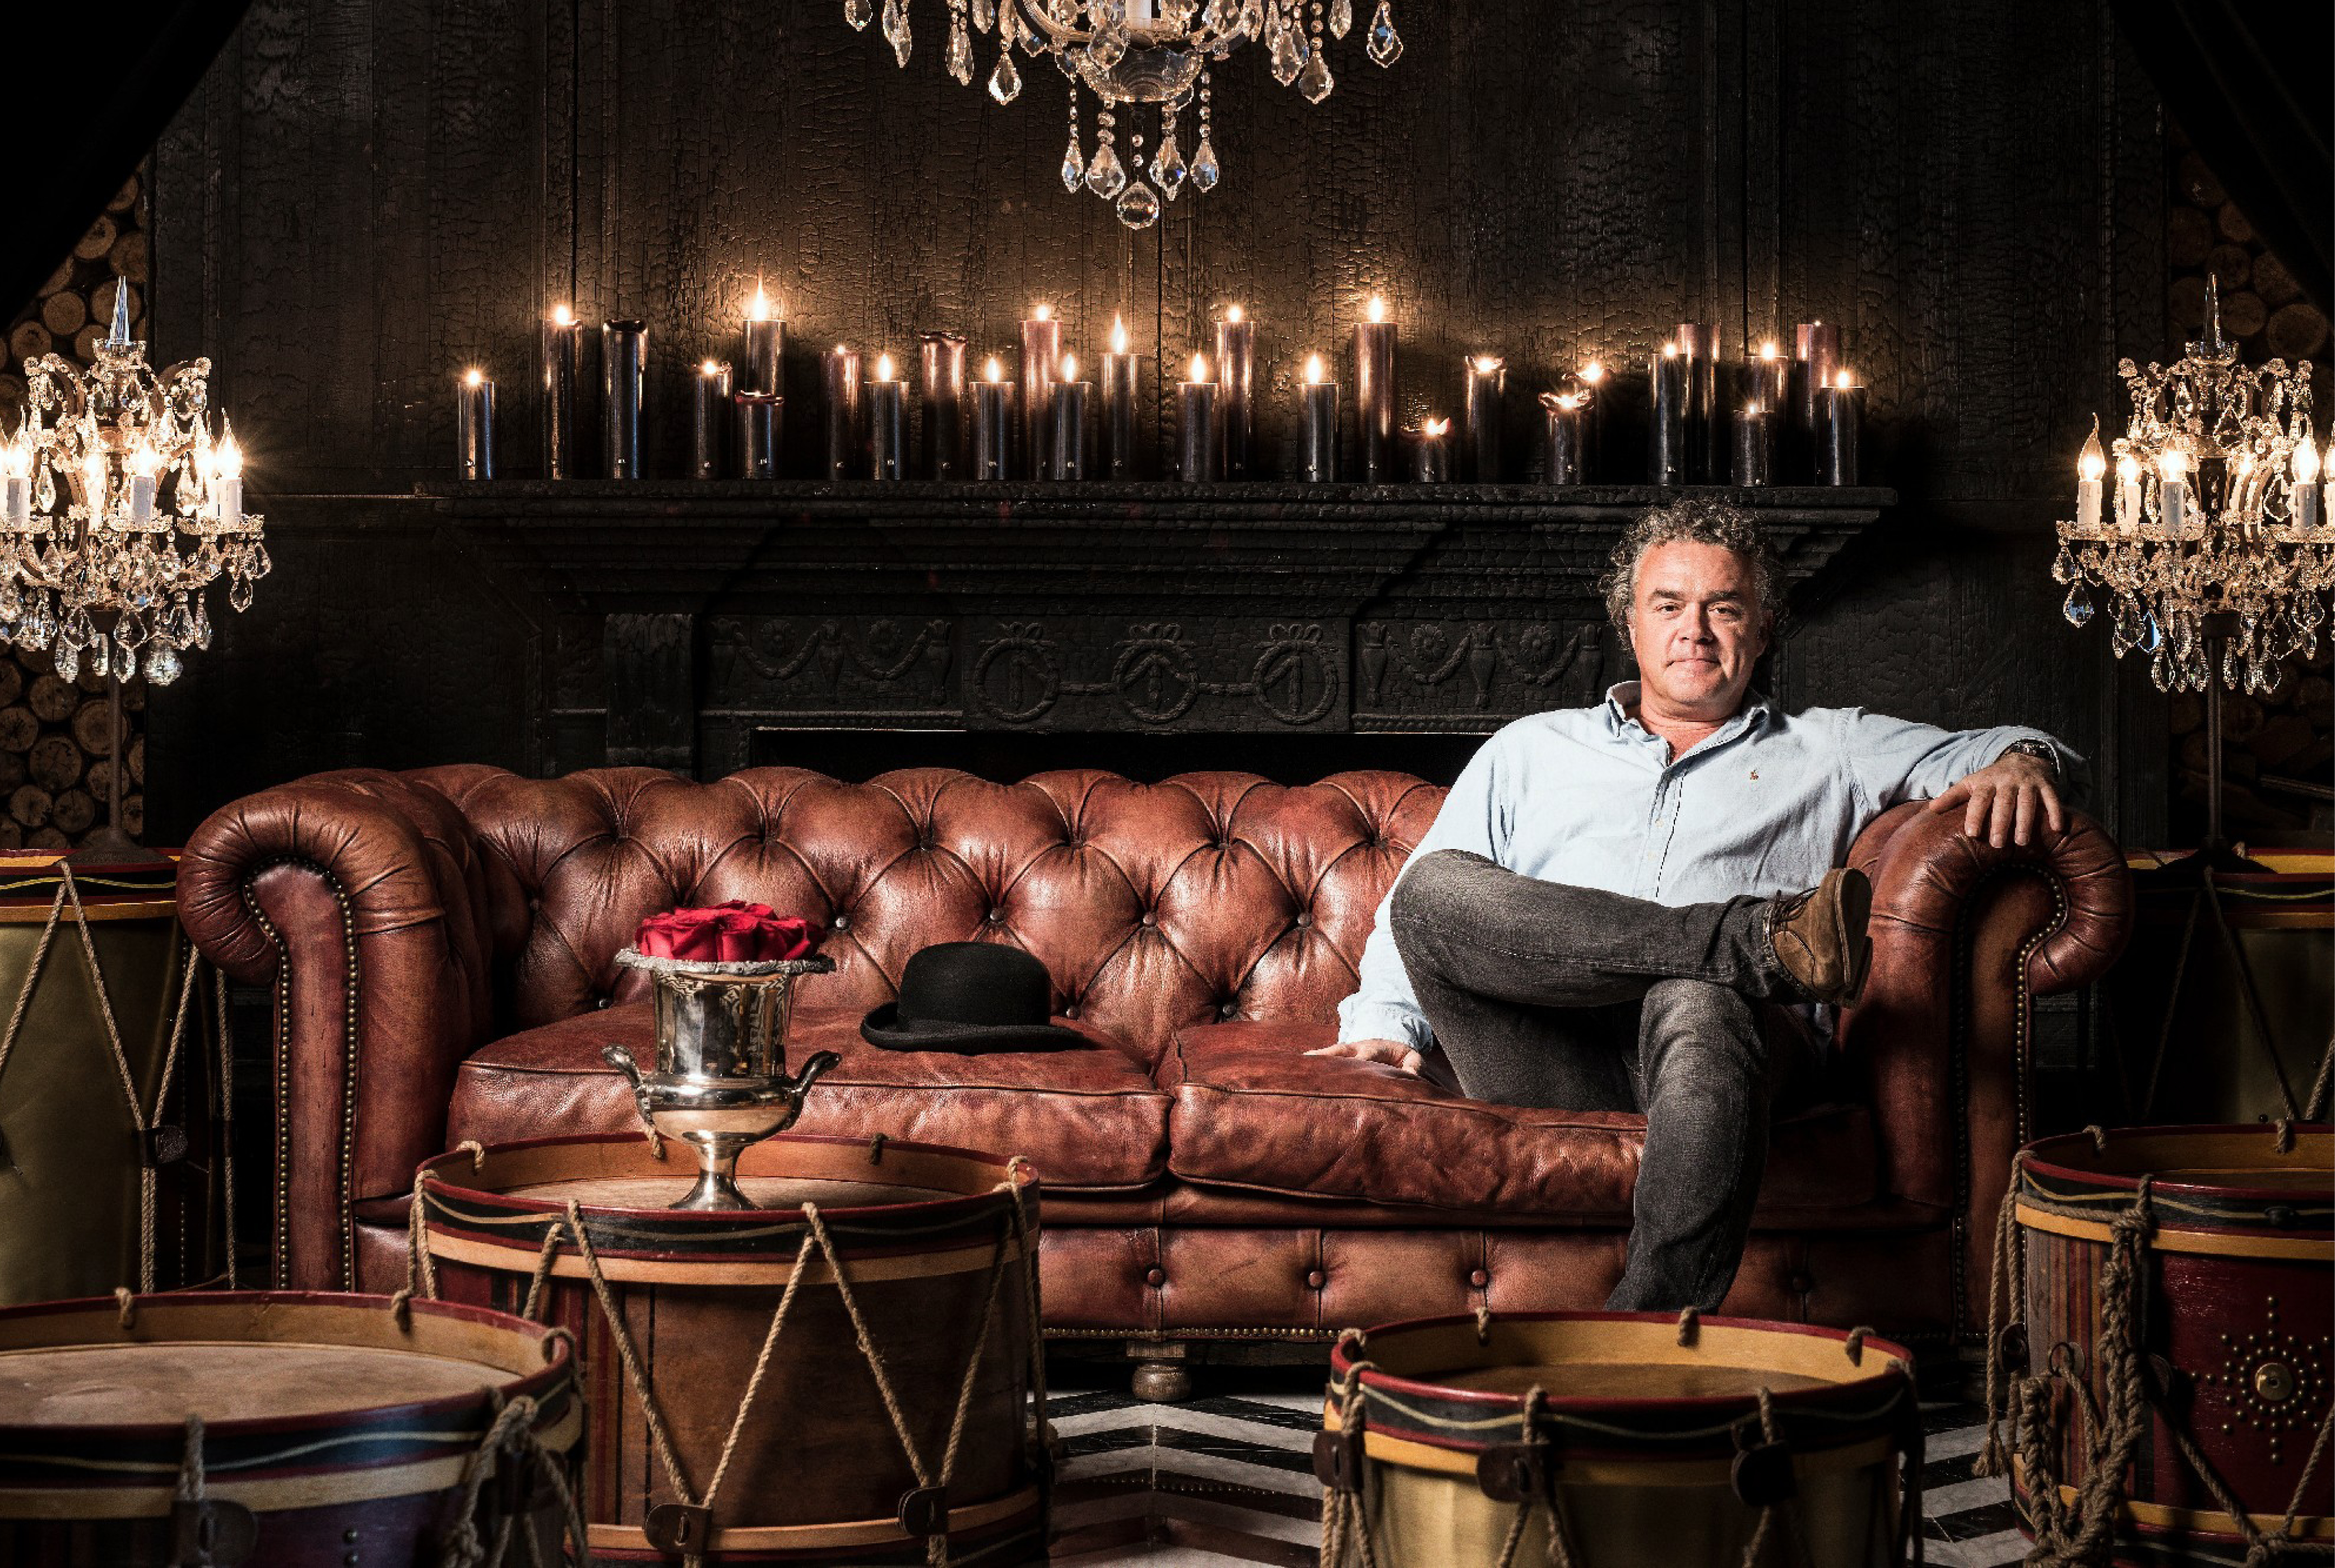 Interior designer Timothy Oulton relaxes on a Chesterfield